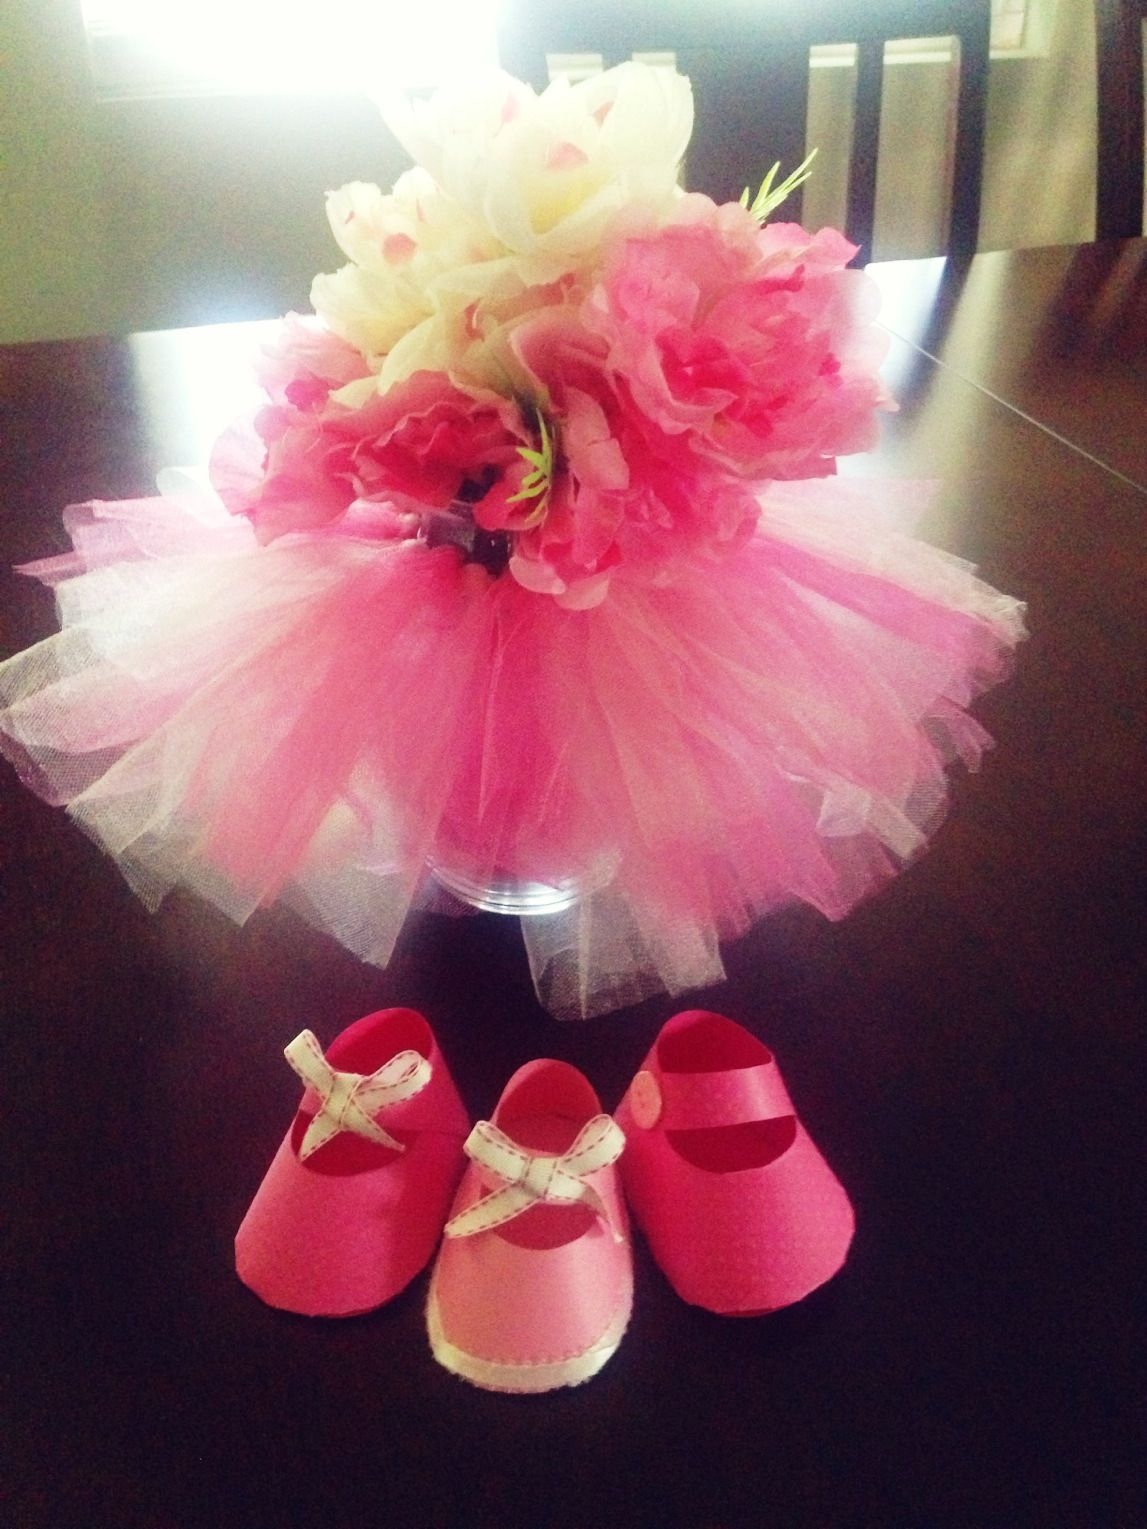 Amazing Tutu Vase Centerpiece For A Baby Shower.